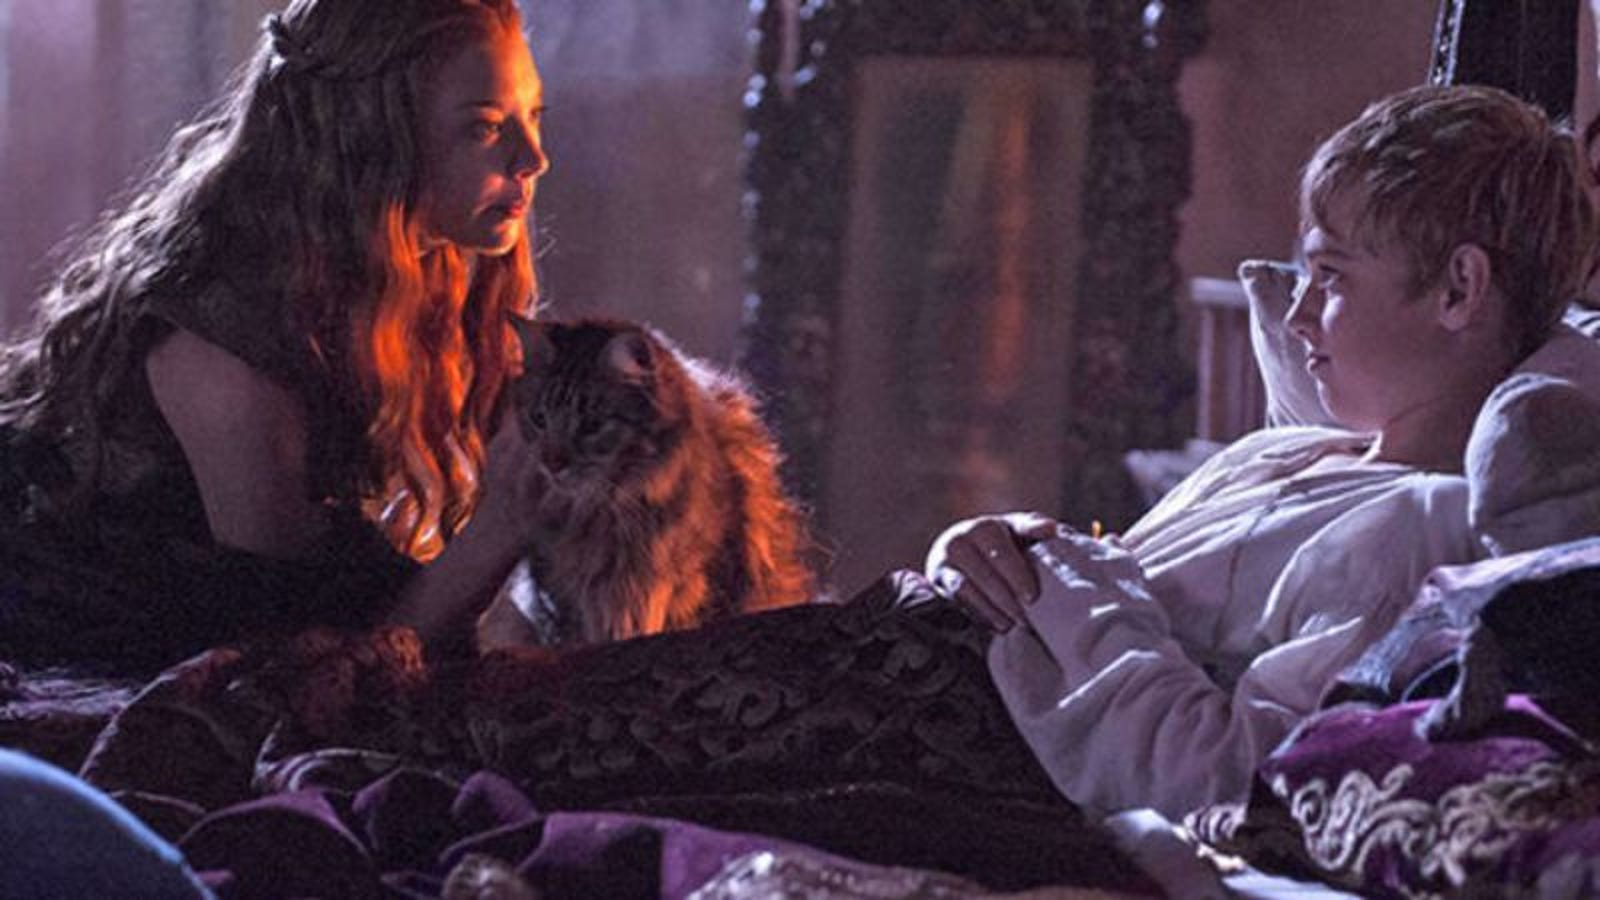 Whoever wins, we lose: Ser Pounce has lost the game of thrones